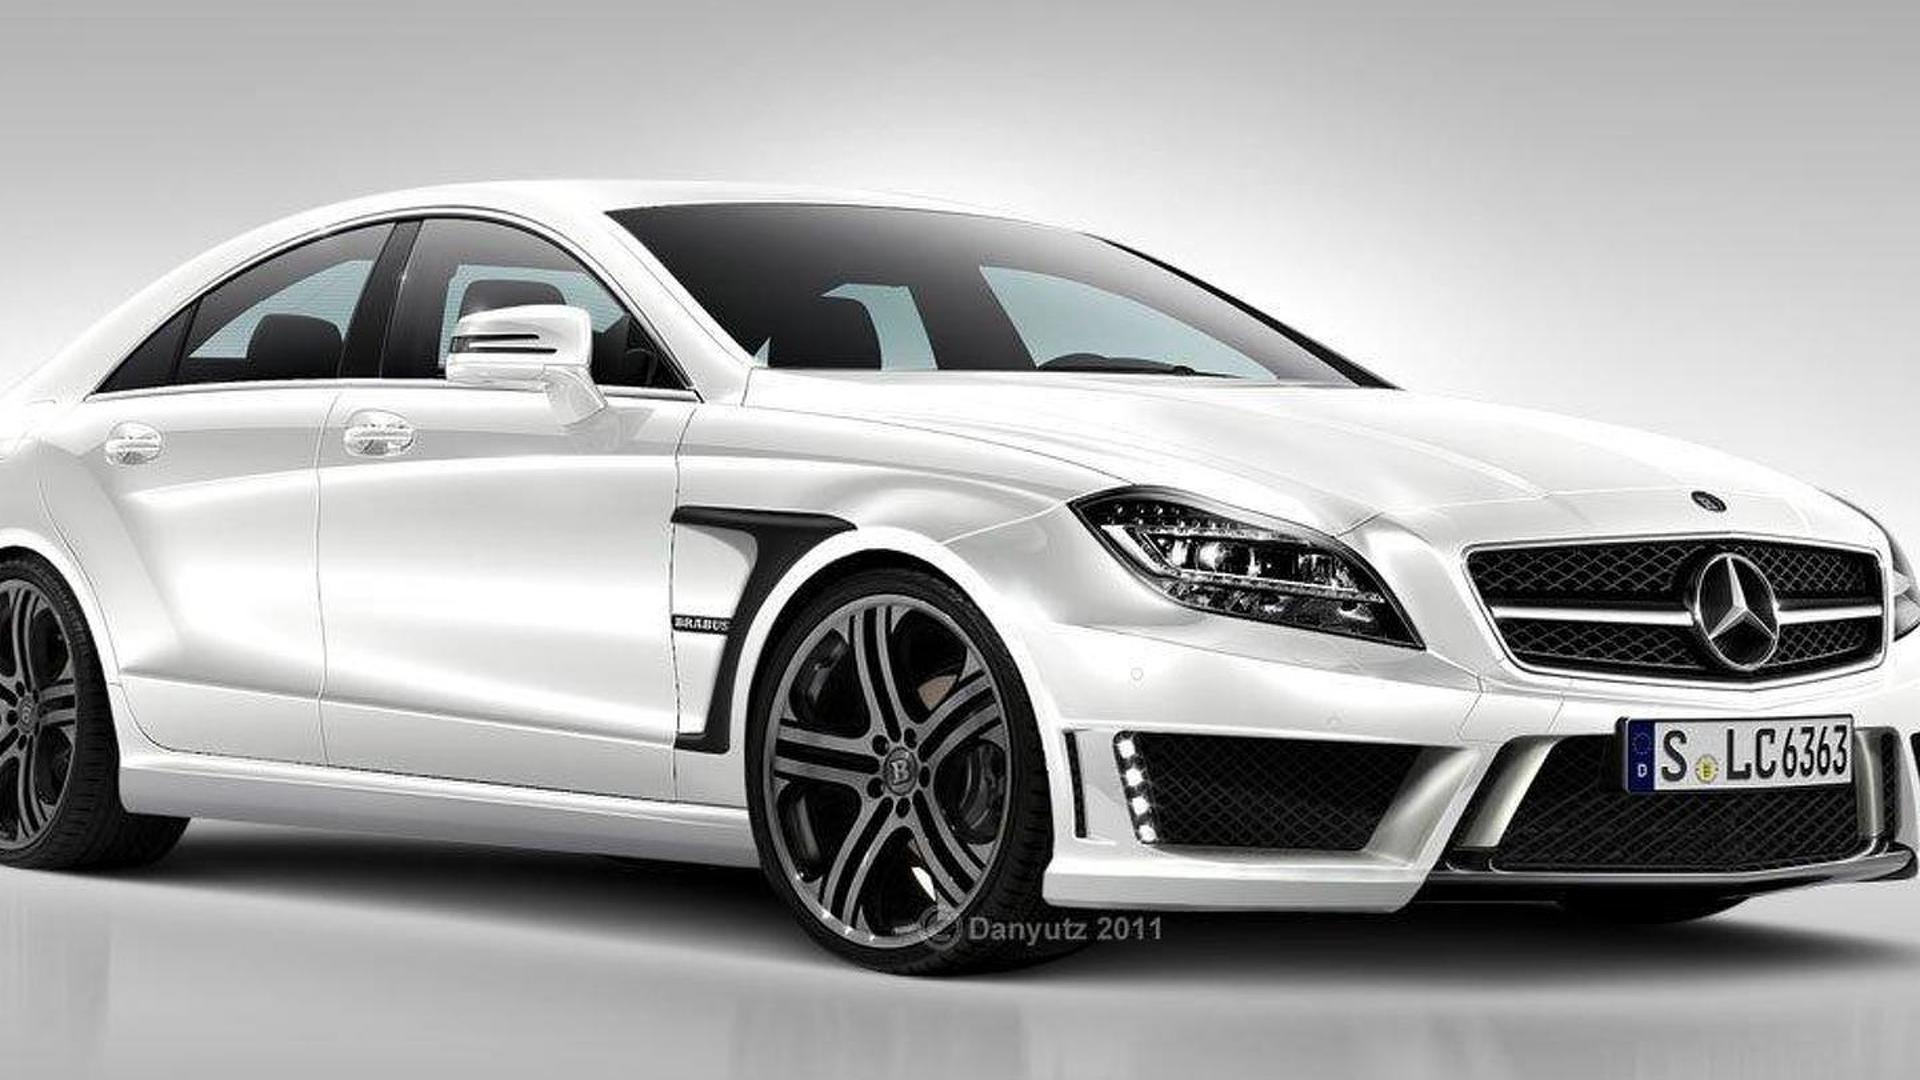 New Brabus Rocket is mystery teaser? - rendered speculation